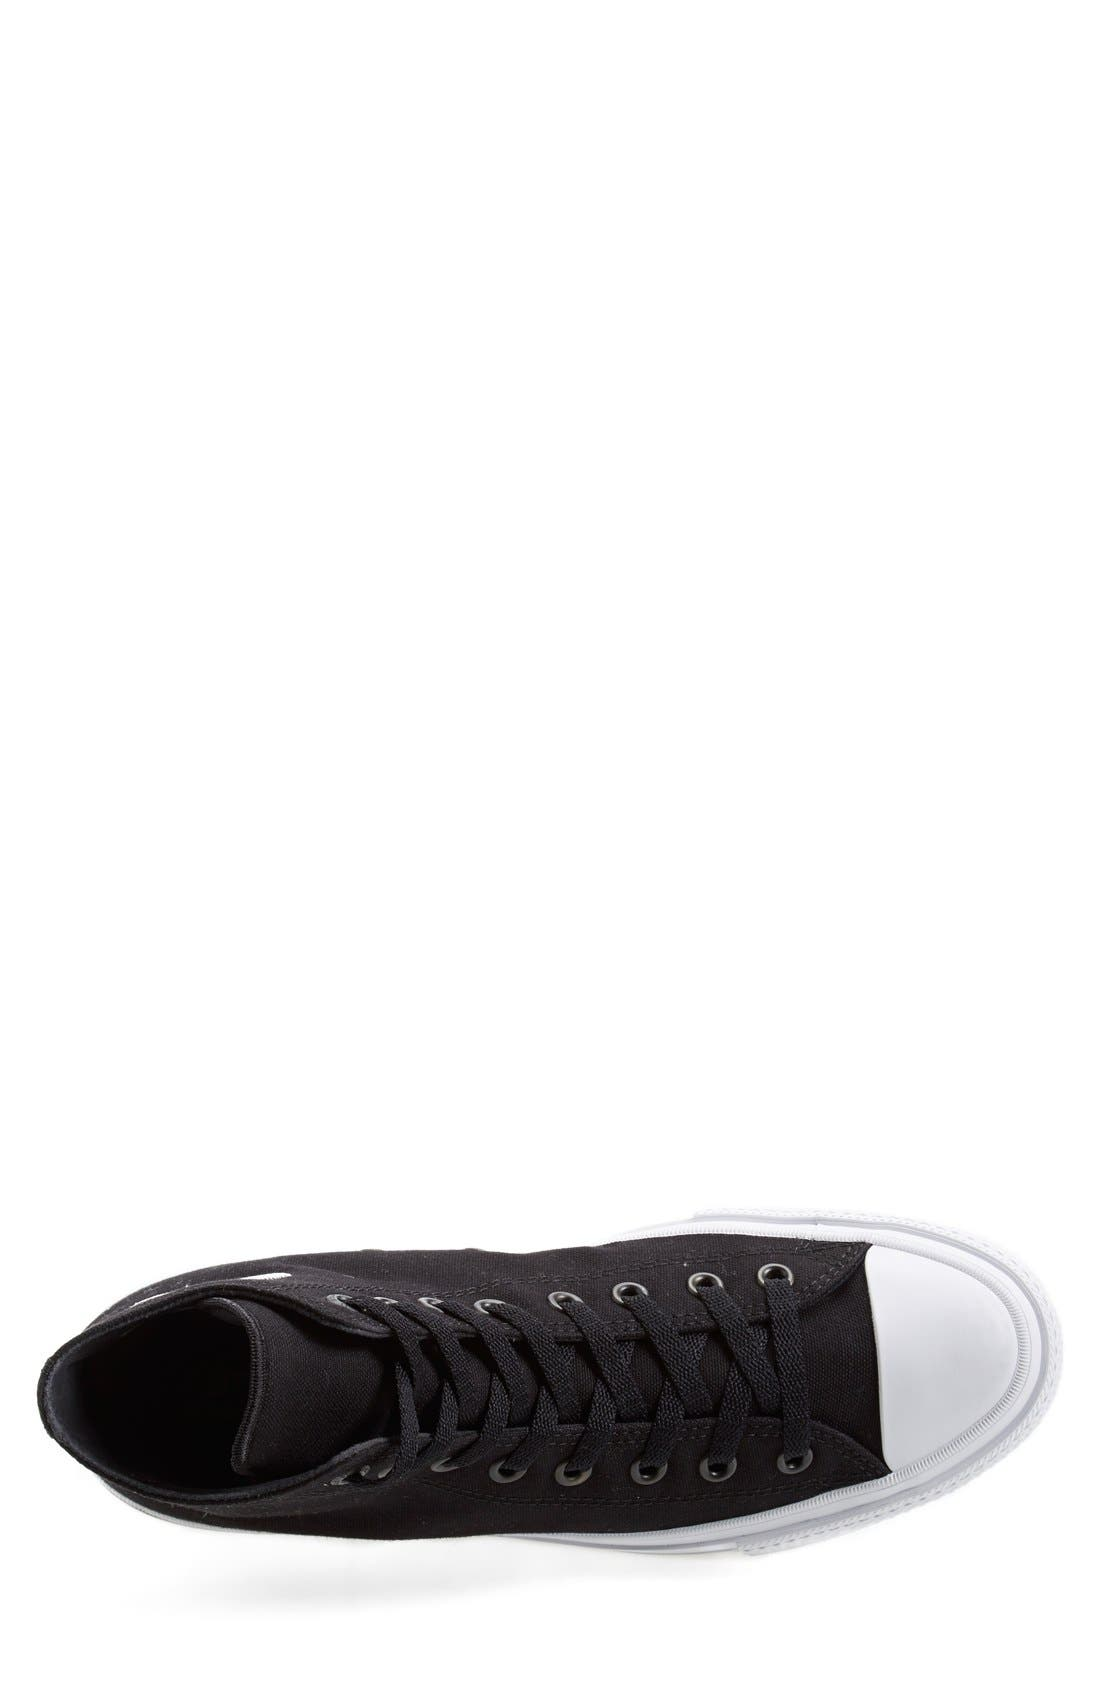 Chuck Taylor<sup>®</sup> All Star<sup>®</sup> Chuck II High Top Sneaker,                             Alternate thumbnail 5, color,                             Black/ White/ Navy Canvas